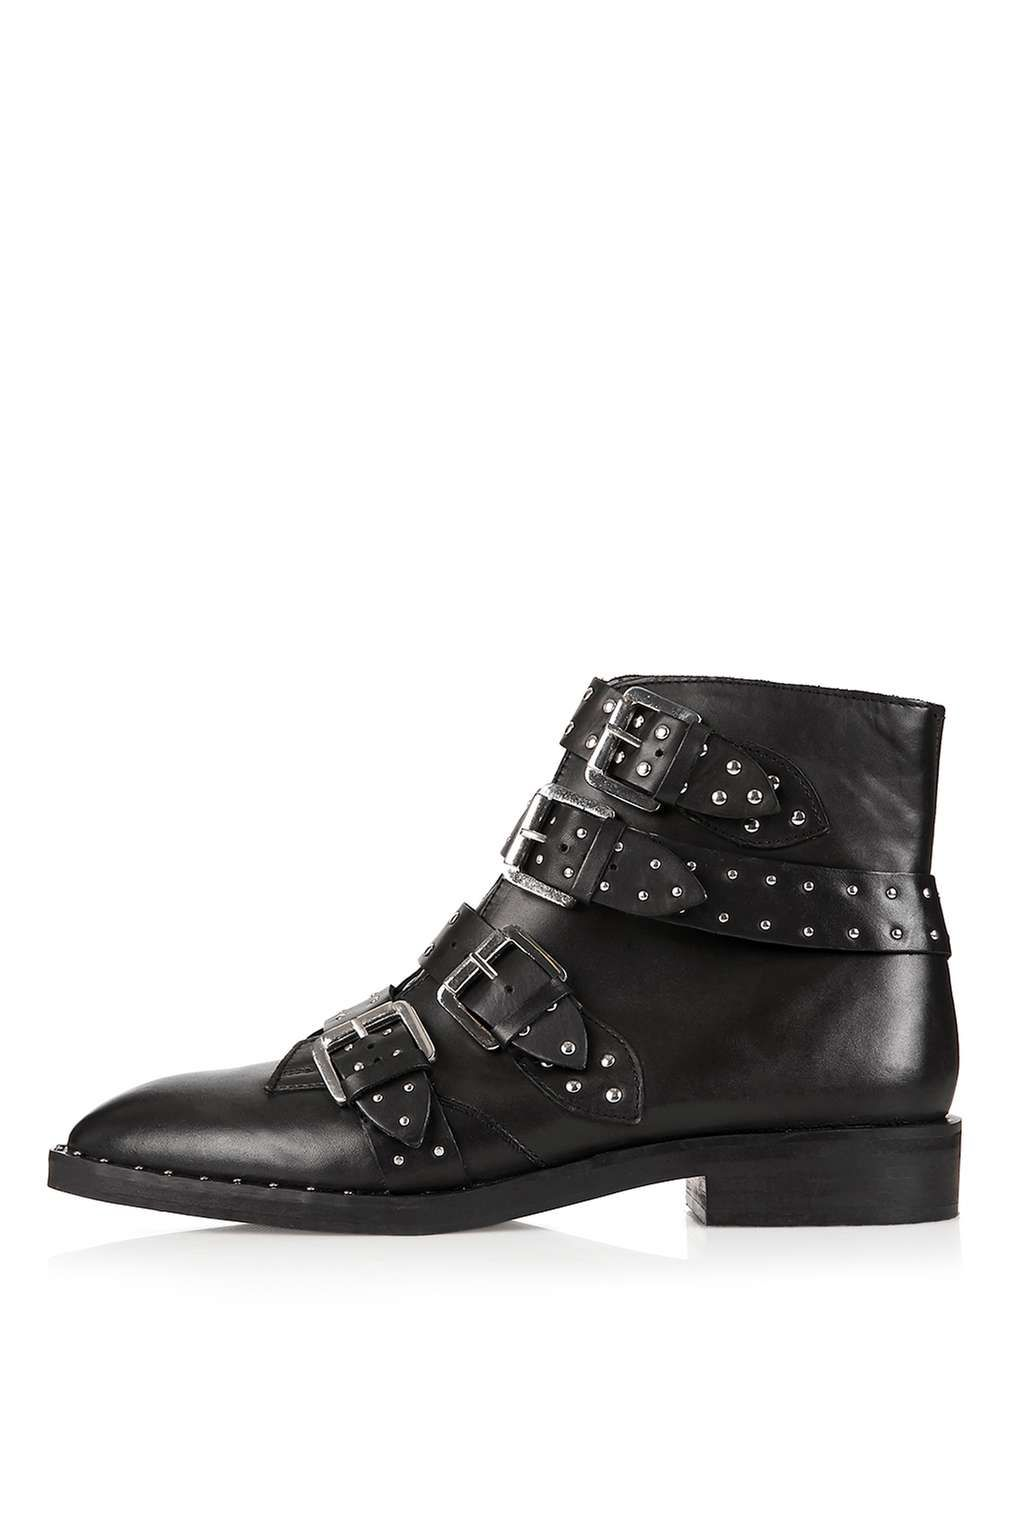 AMY Studded Ankle Boots | Fashion Wishlist | Pinterest | Studded ...